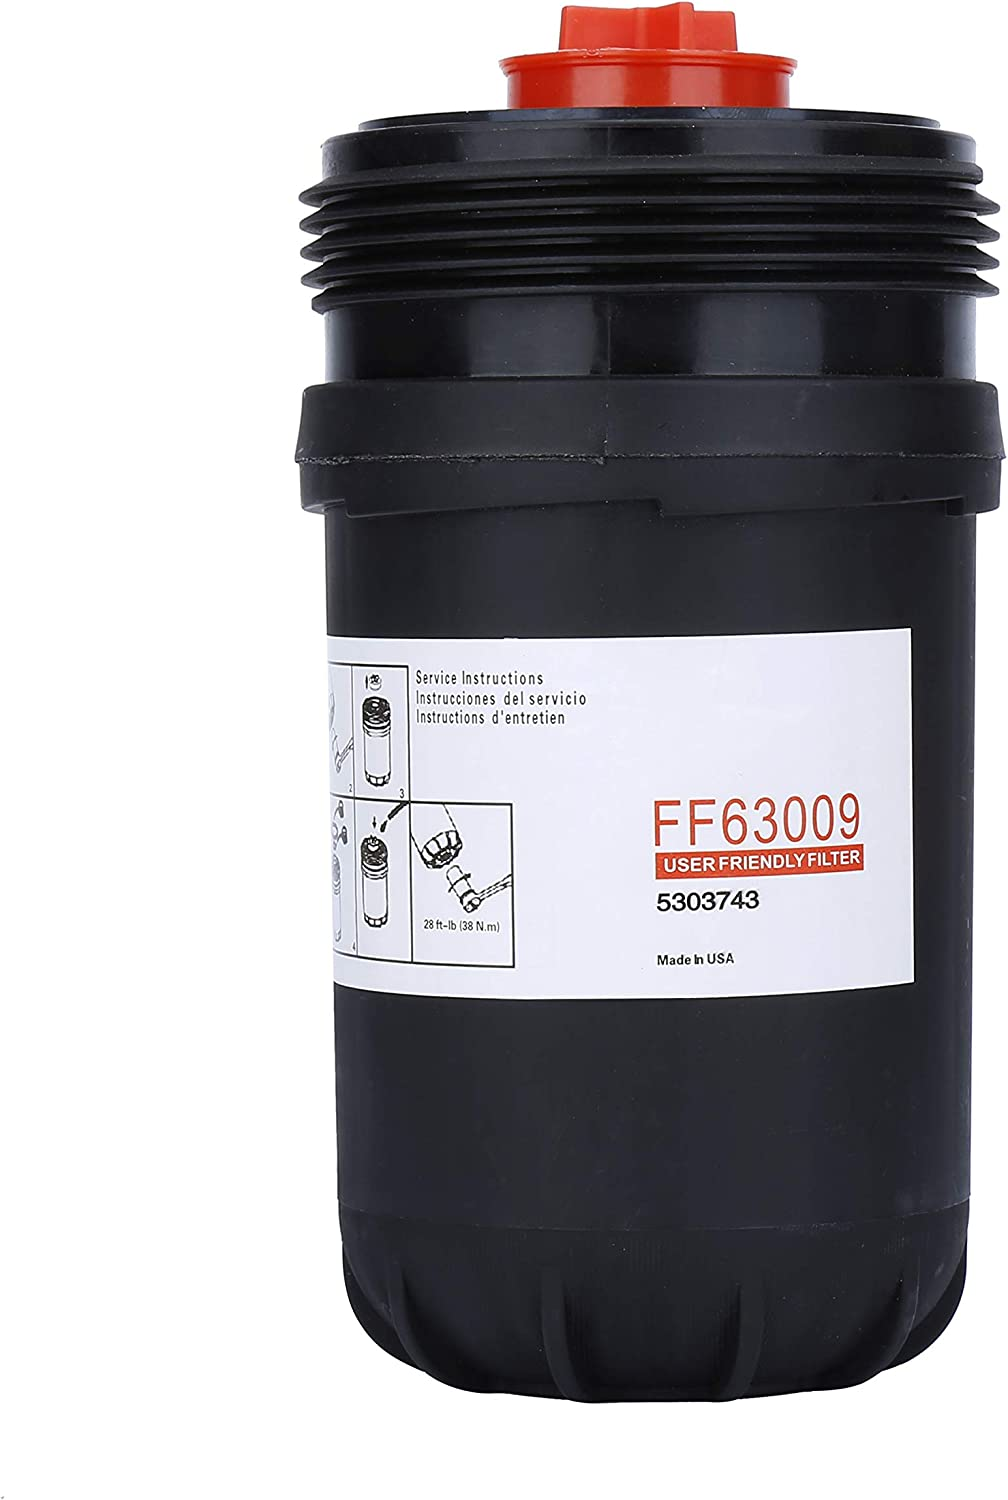 FF63008,FH22168 and L FF63009 Fuel Filter for Cummins,Best Protection and Longer Fuel System Life,Fit for for Cummins B Series Diesel Engines Filtration,Replaces# 5303743